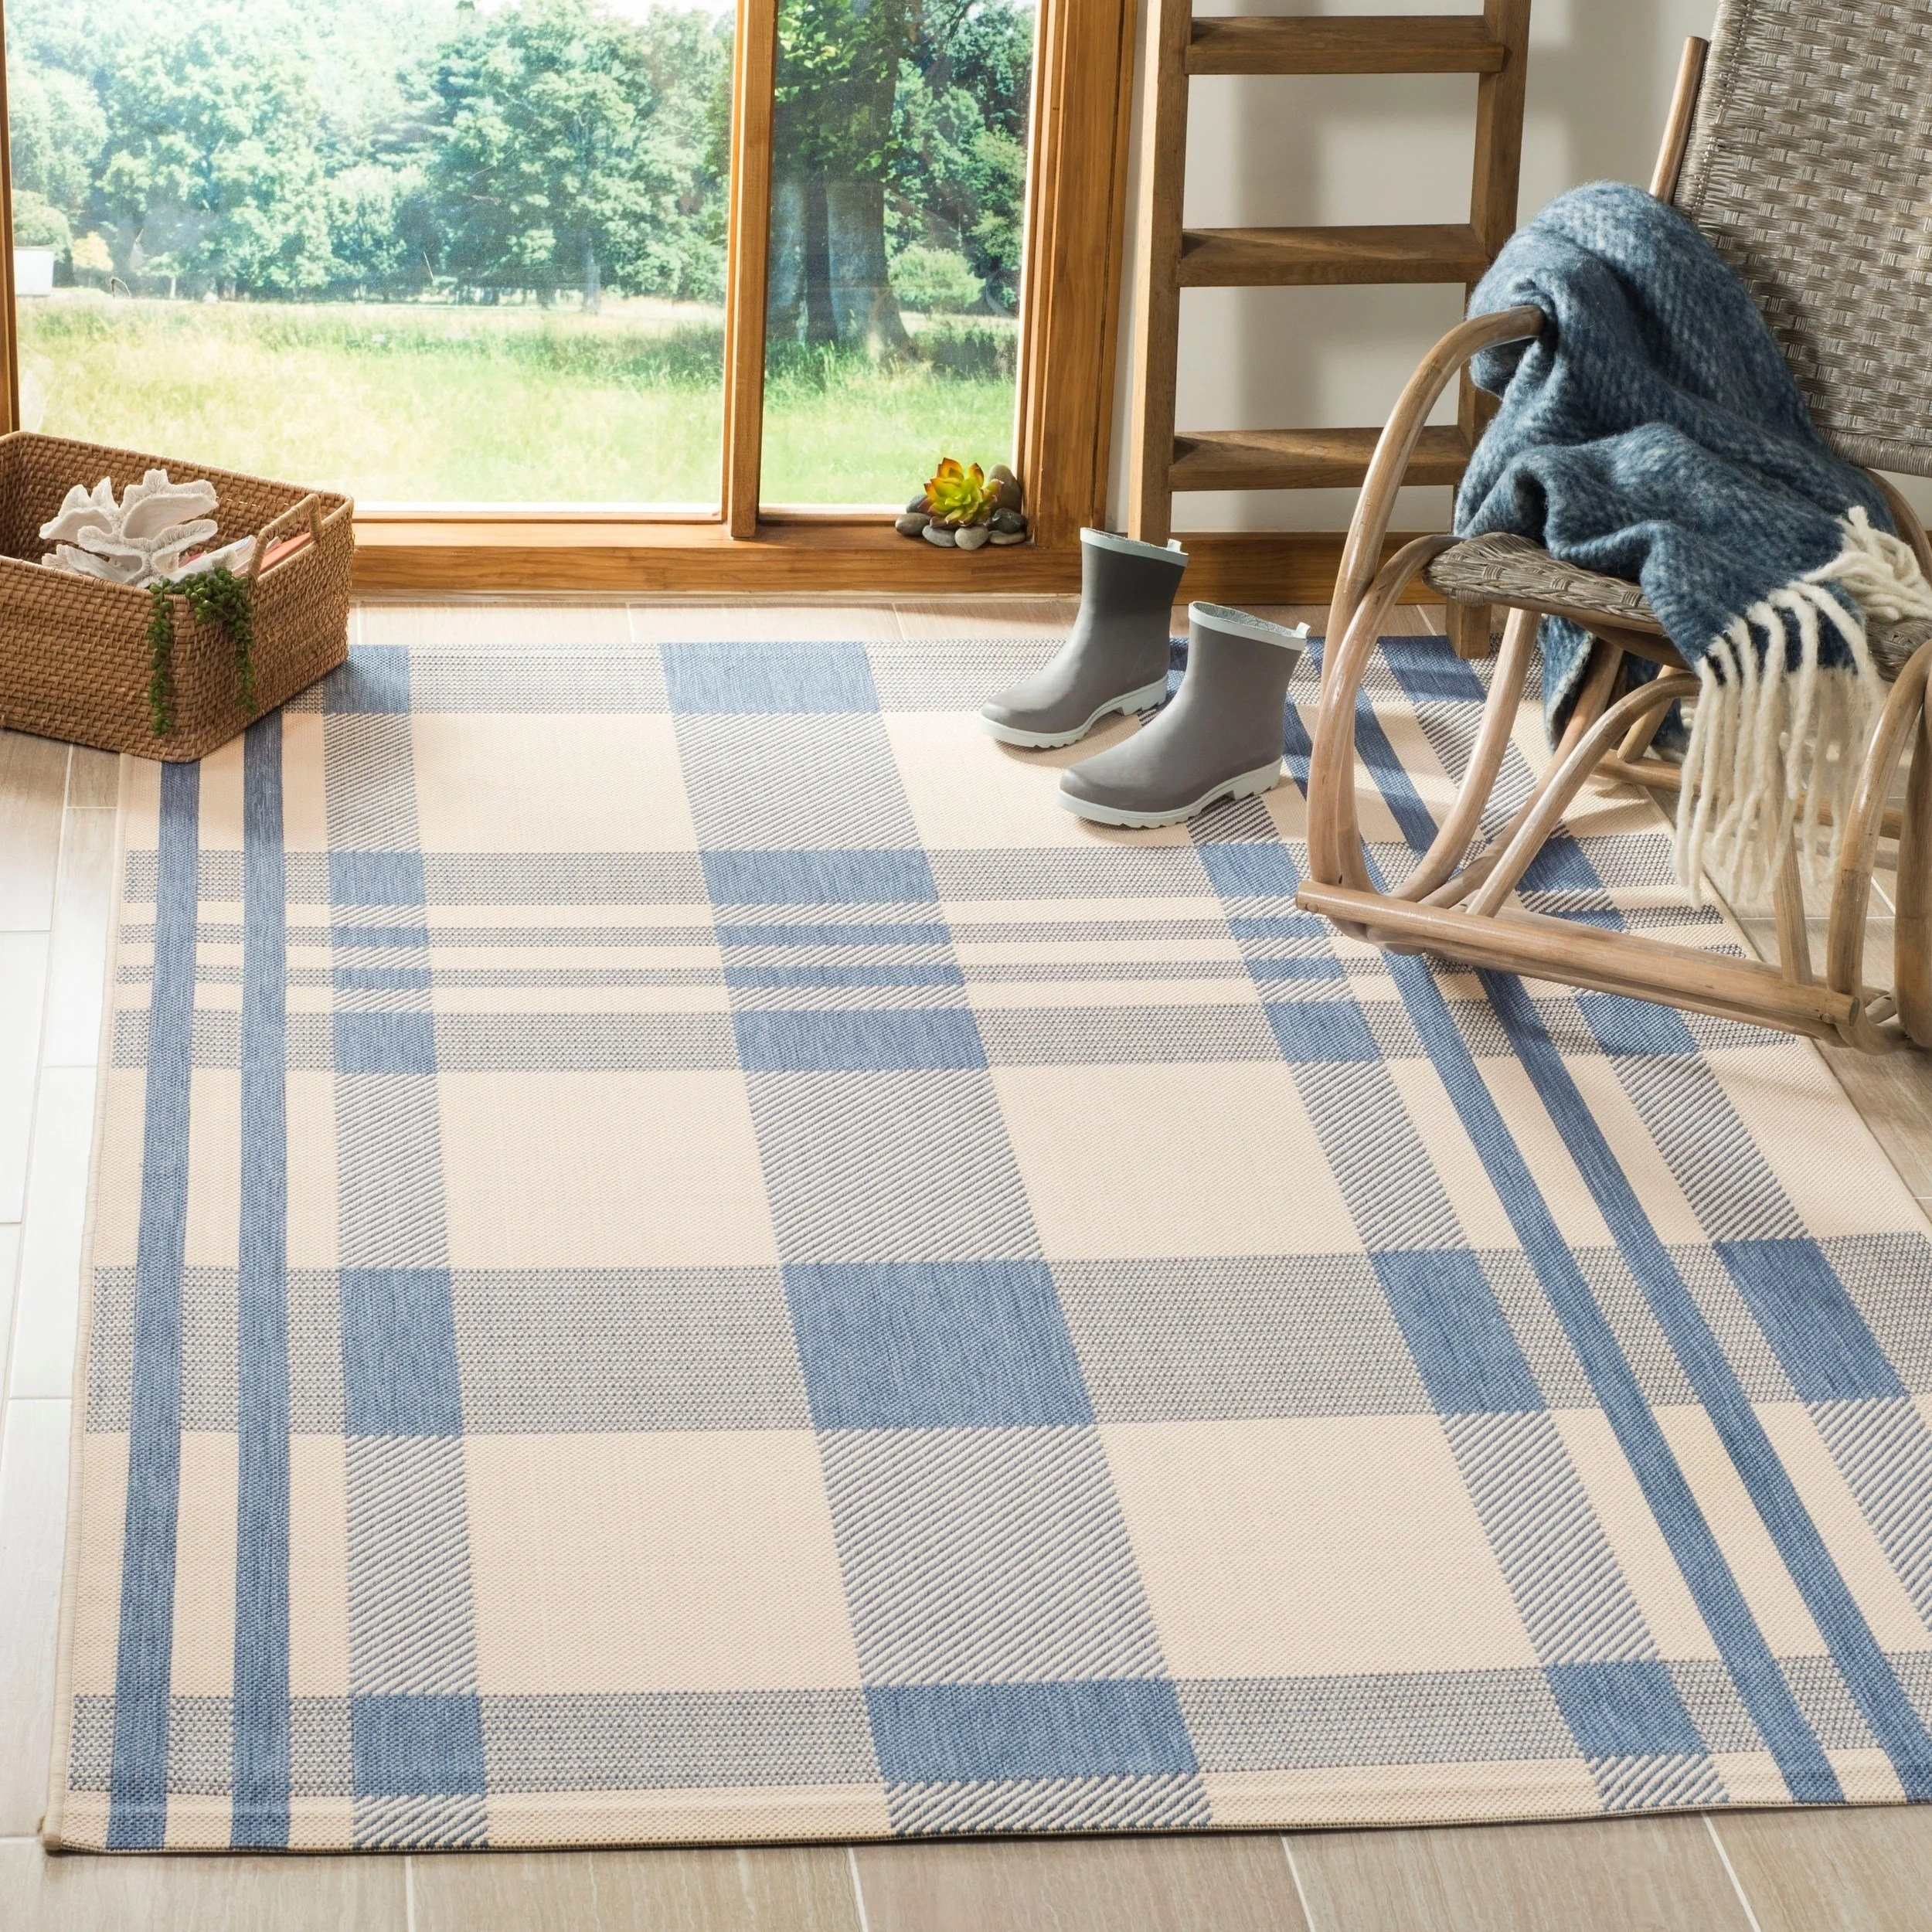 Safavieh Courtyard Safavieh Courtyard Plaid Beige Blue Indoor Outdoor Rug